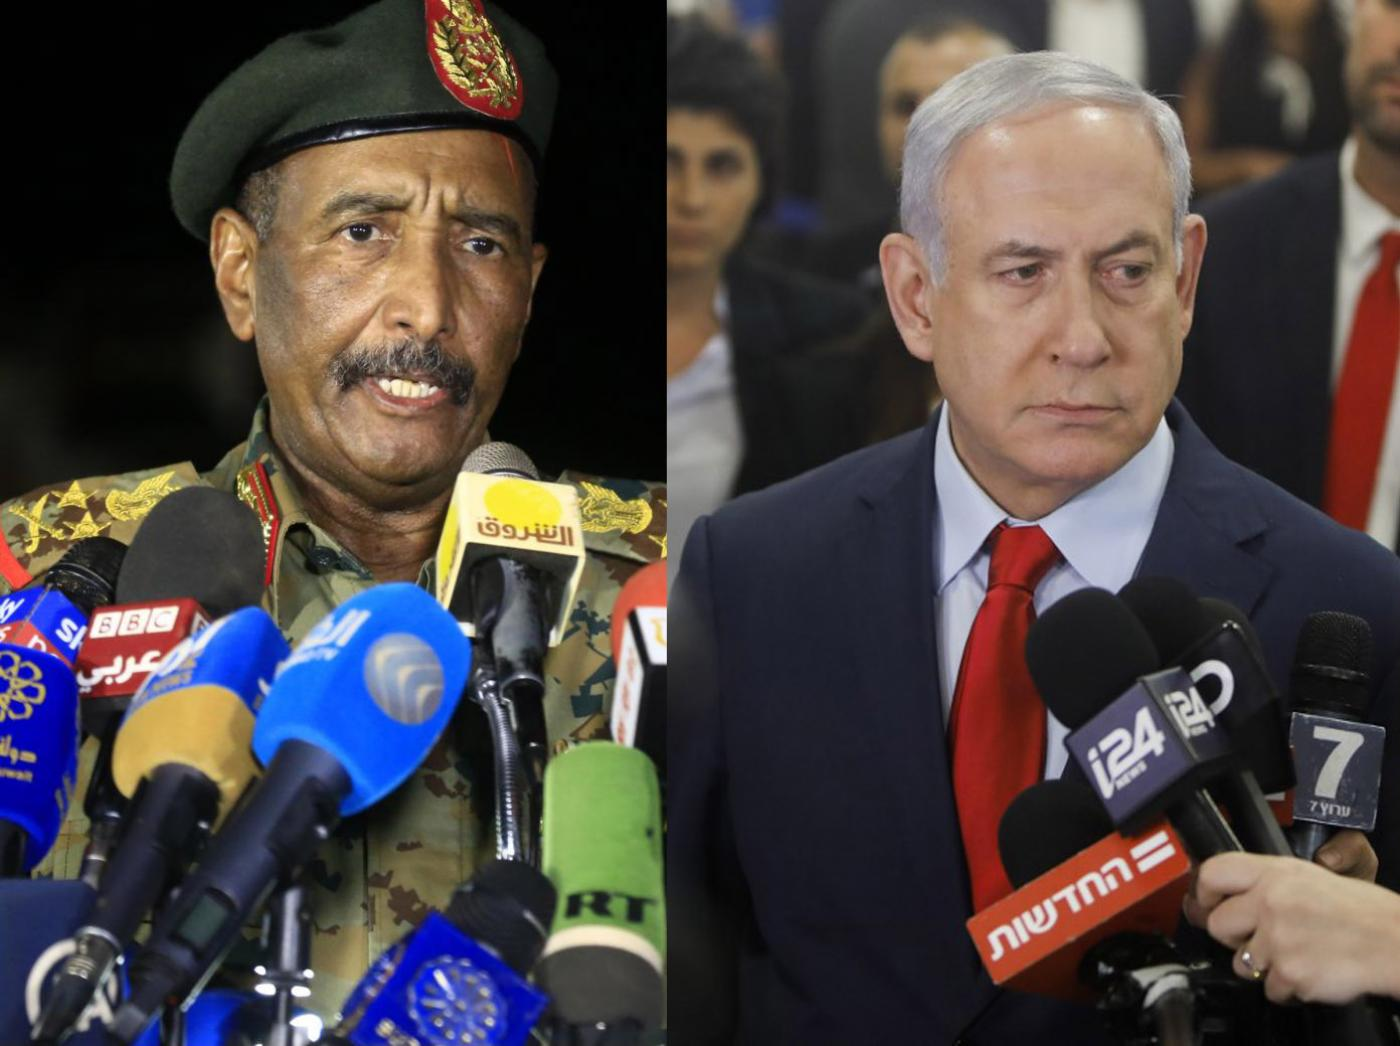 Israeli and Sudanese leaders meet in secret, agree to start normalising  ties | Middle East Eye